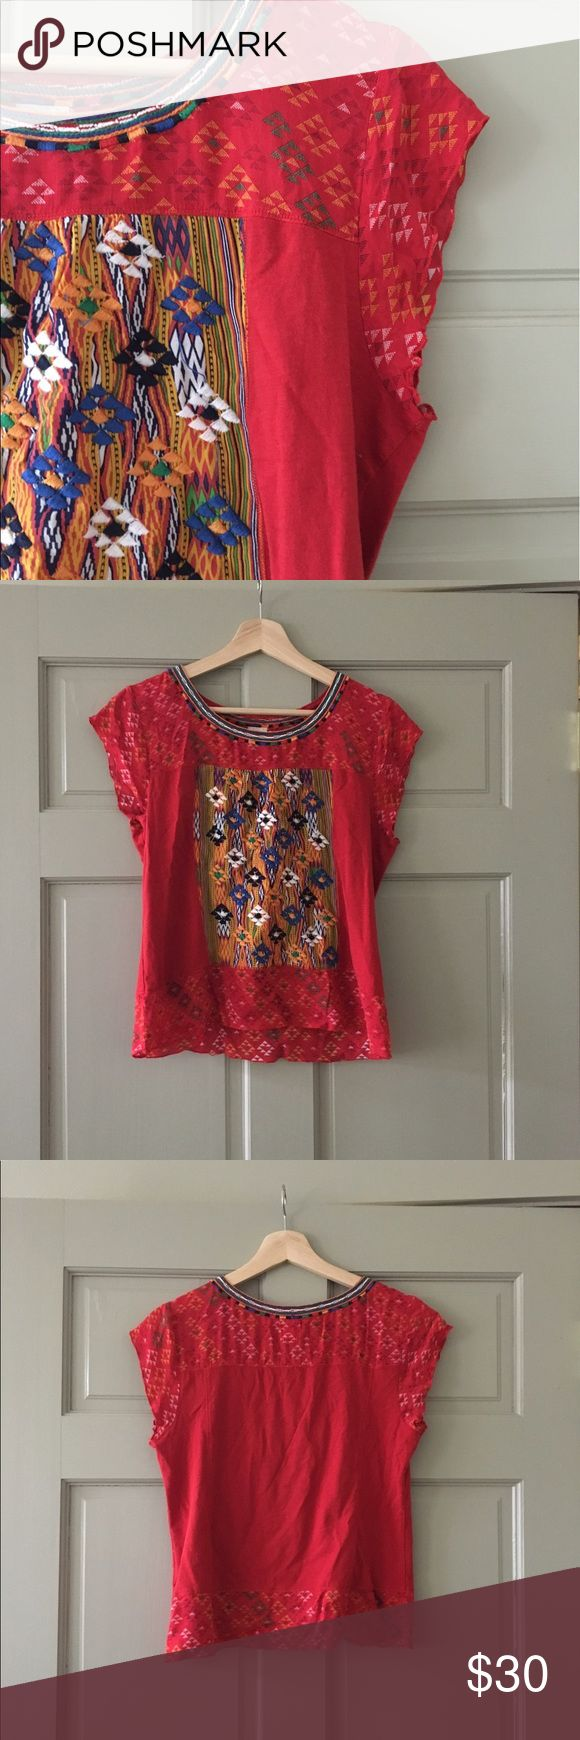 Aztec blouse Gorgeous cotton and rayon top with beautiful embroidery. Size medium but fits like a smaller medium 😊 Anthropologie Tops Blouses